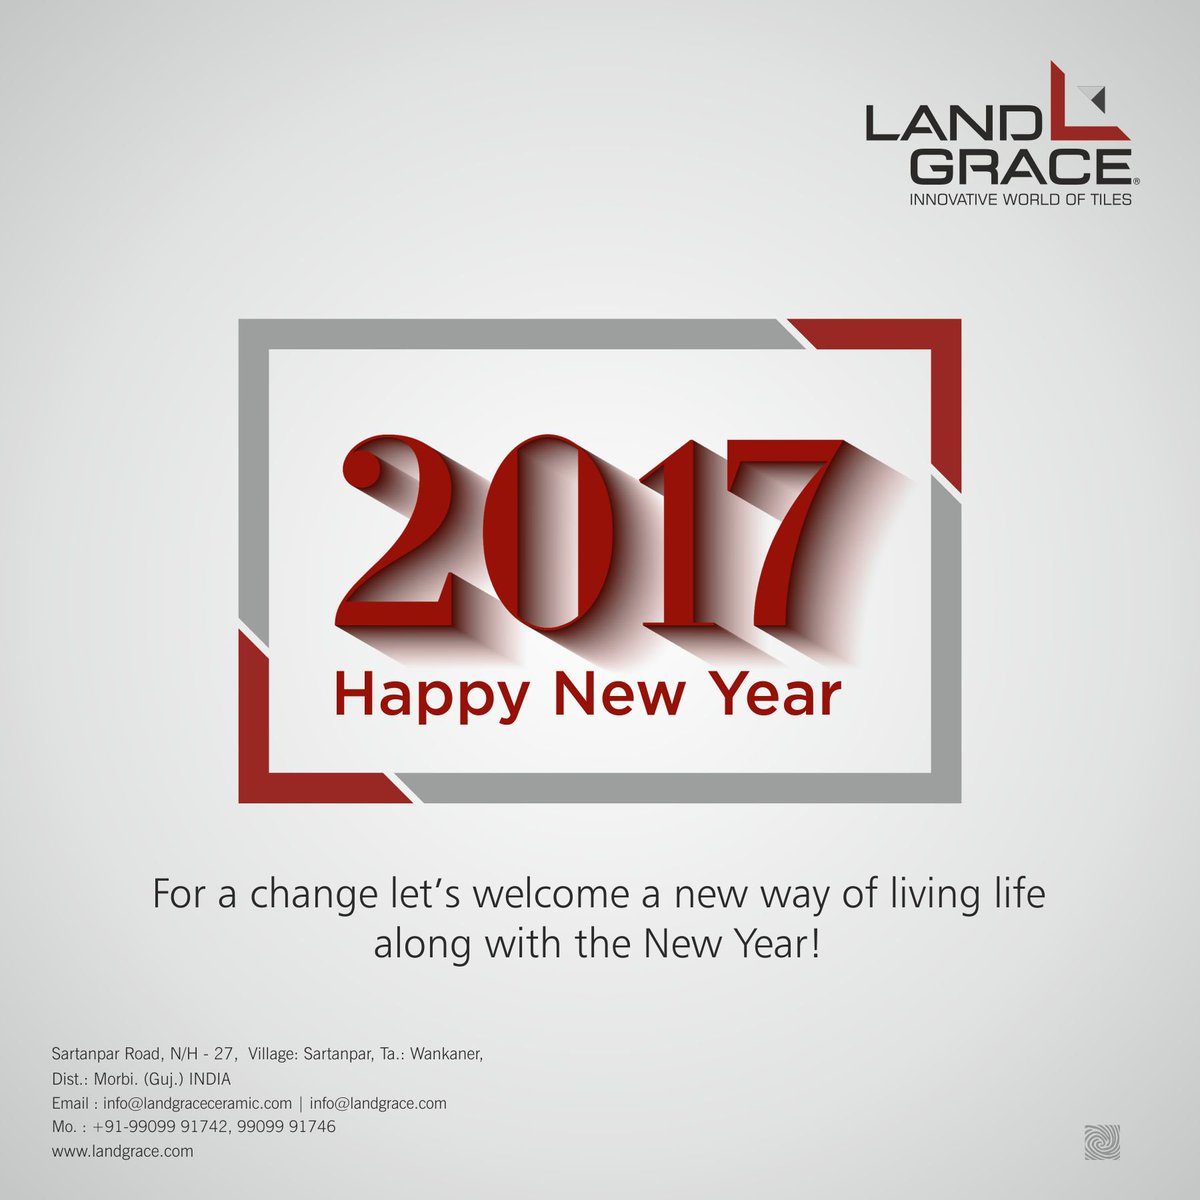 landgrace ceramic on twitter for a change lets welcome a new way of living life along with the new year happy new year landgraceceramic wishes